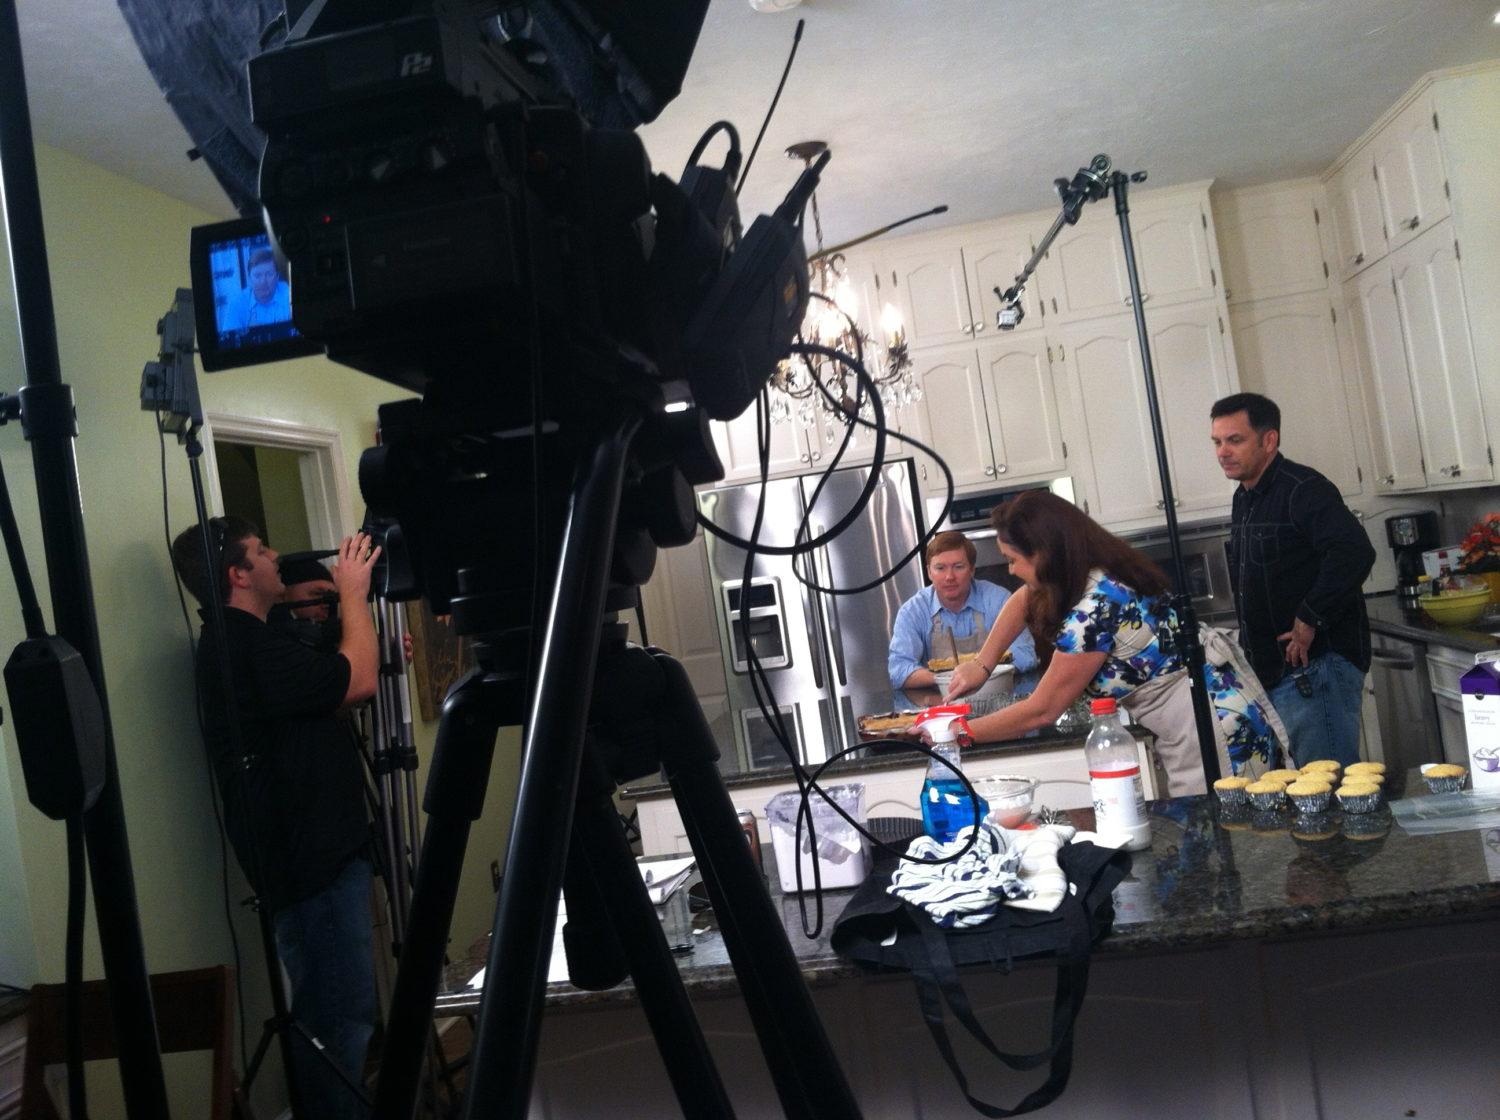 Cooking Show - 142 Productions